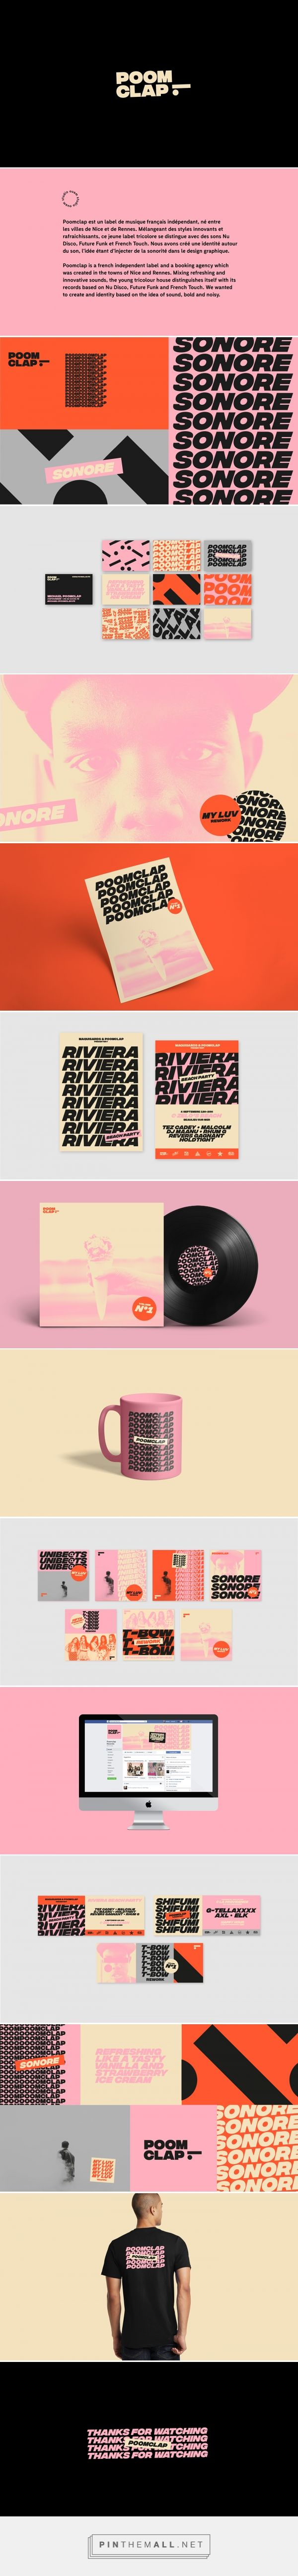 POOMCLAP French Record Label Branding by Studio Ouam | Fivestar Branding Agency – Design and Branding Agency & Curated Inspiration Gallery